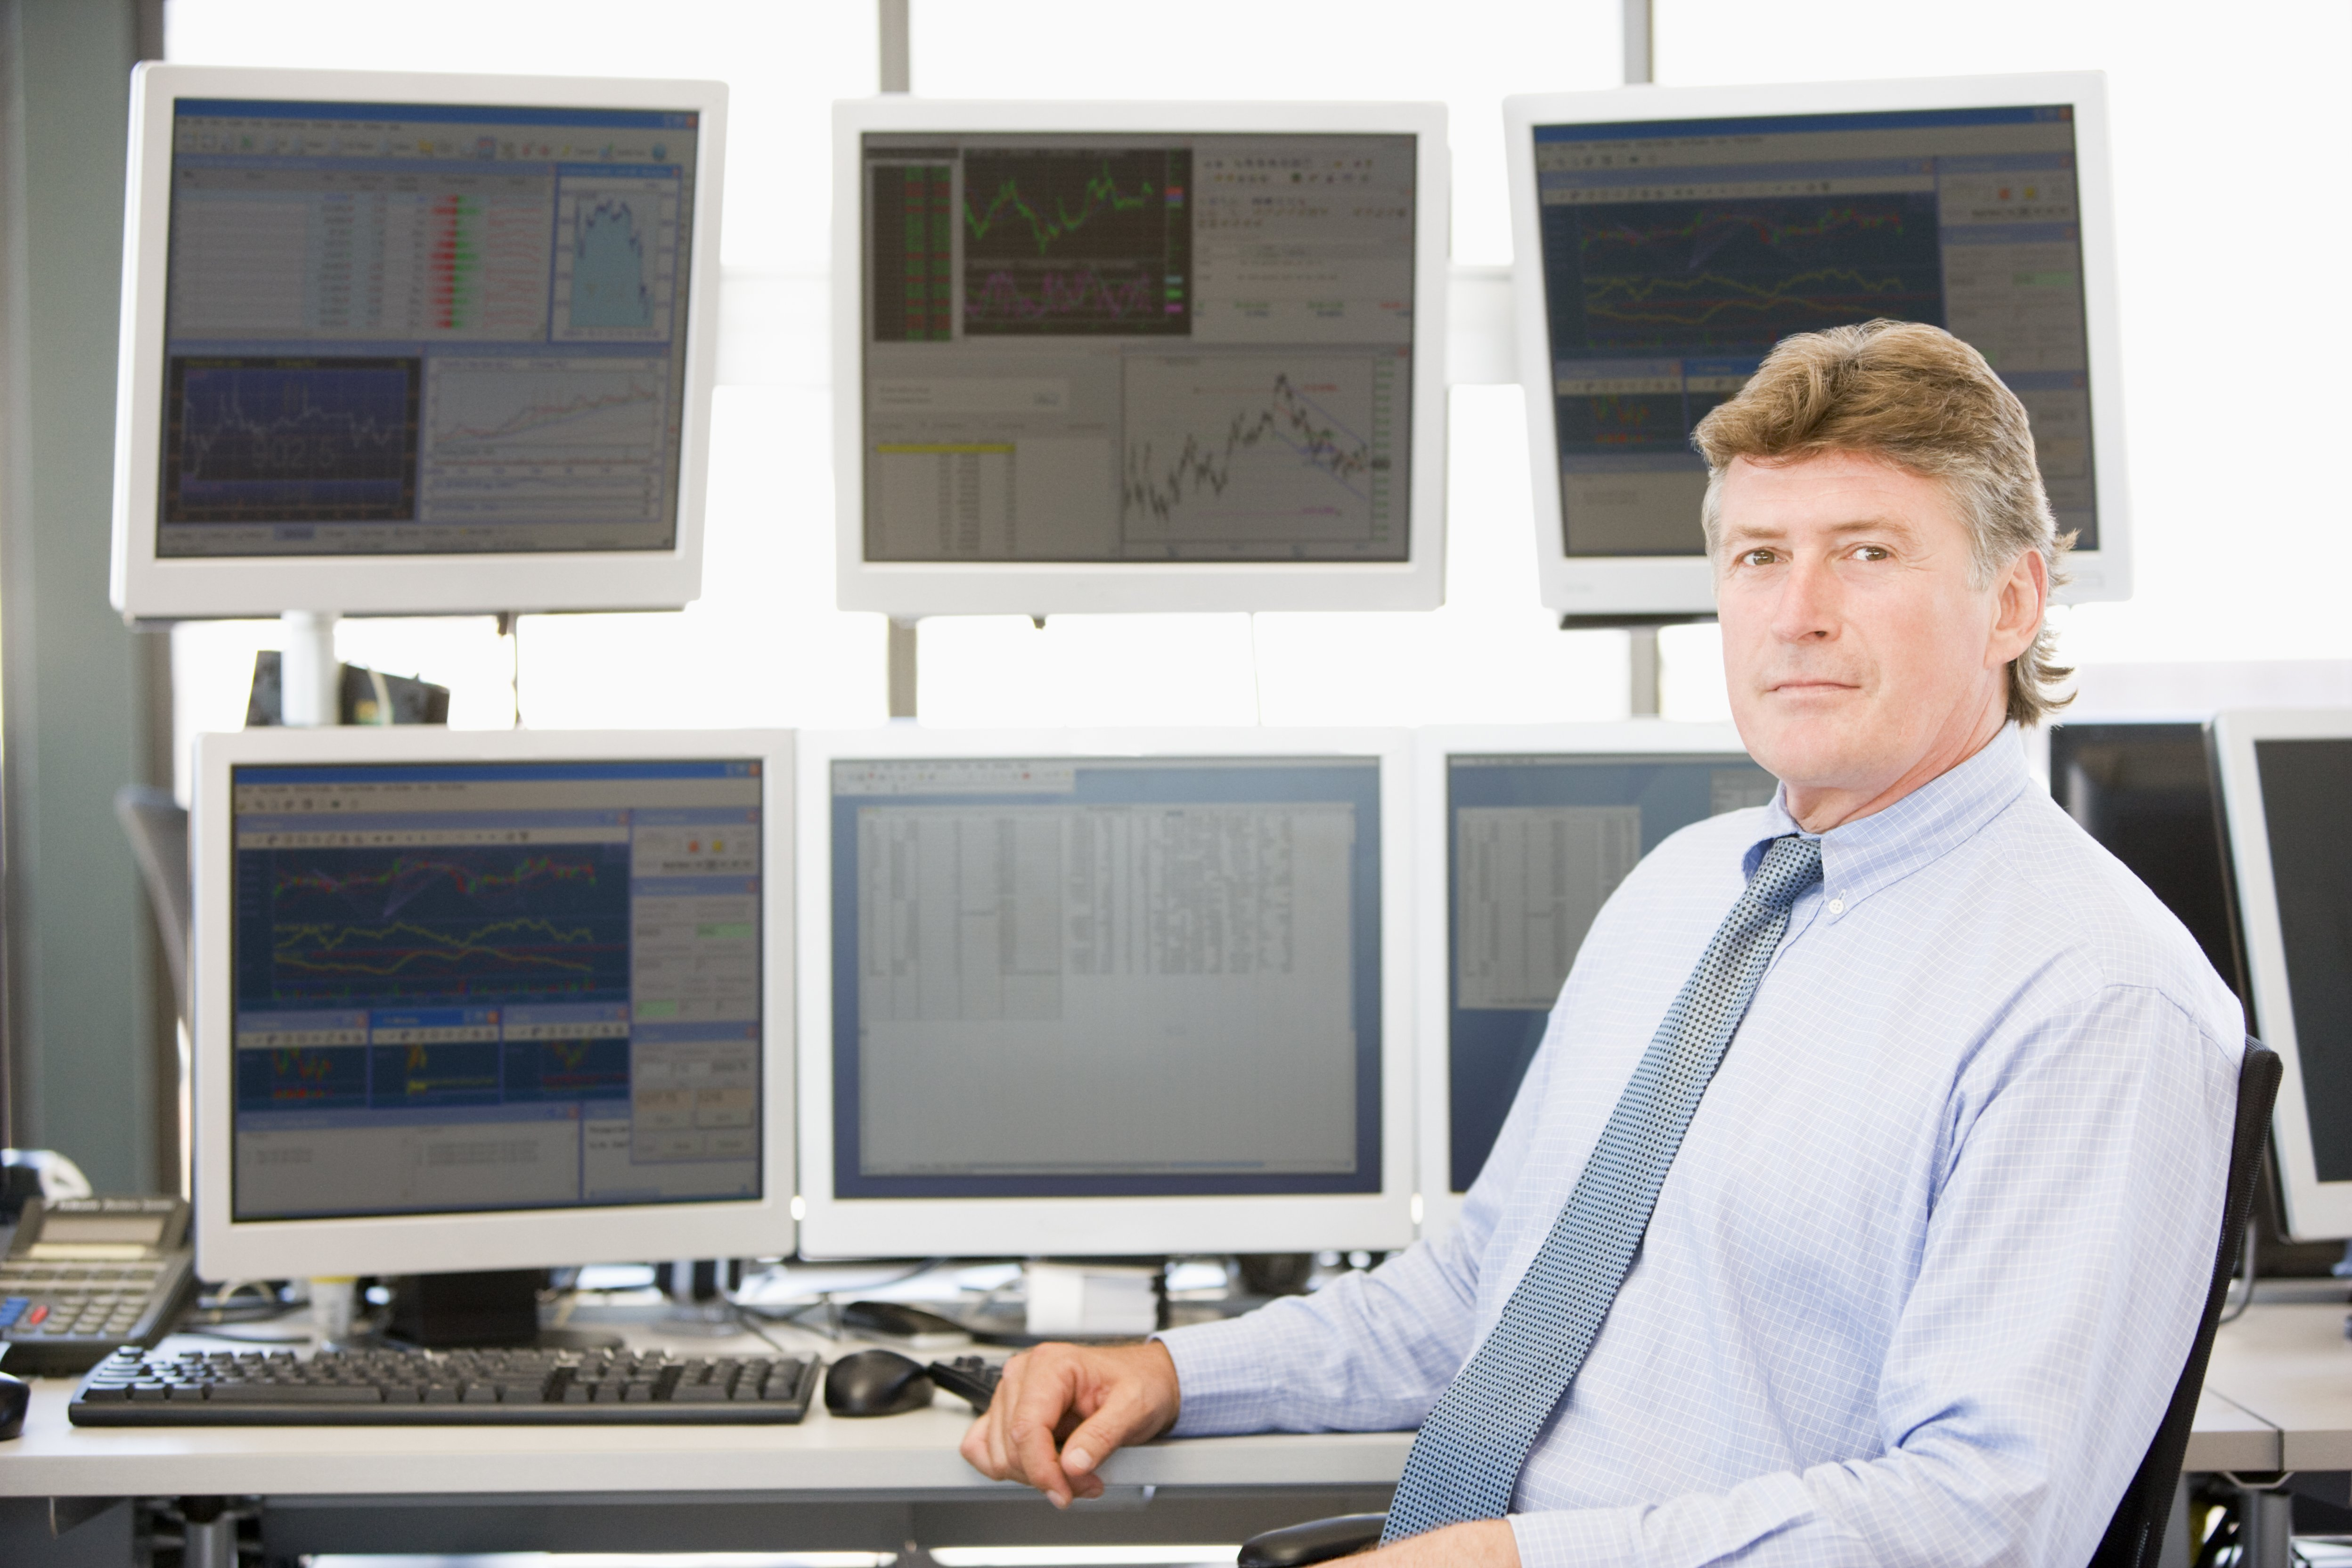 Traders Help Desk Review from an Experienced Trader